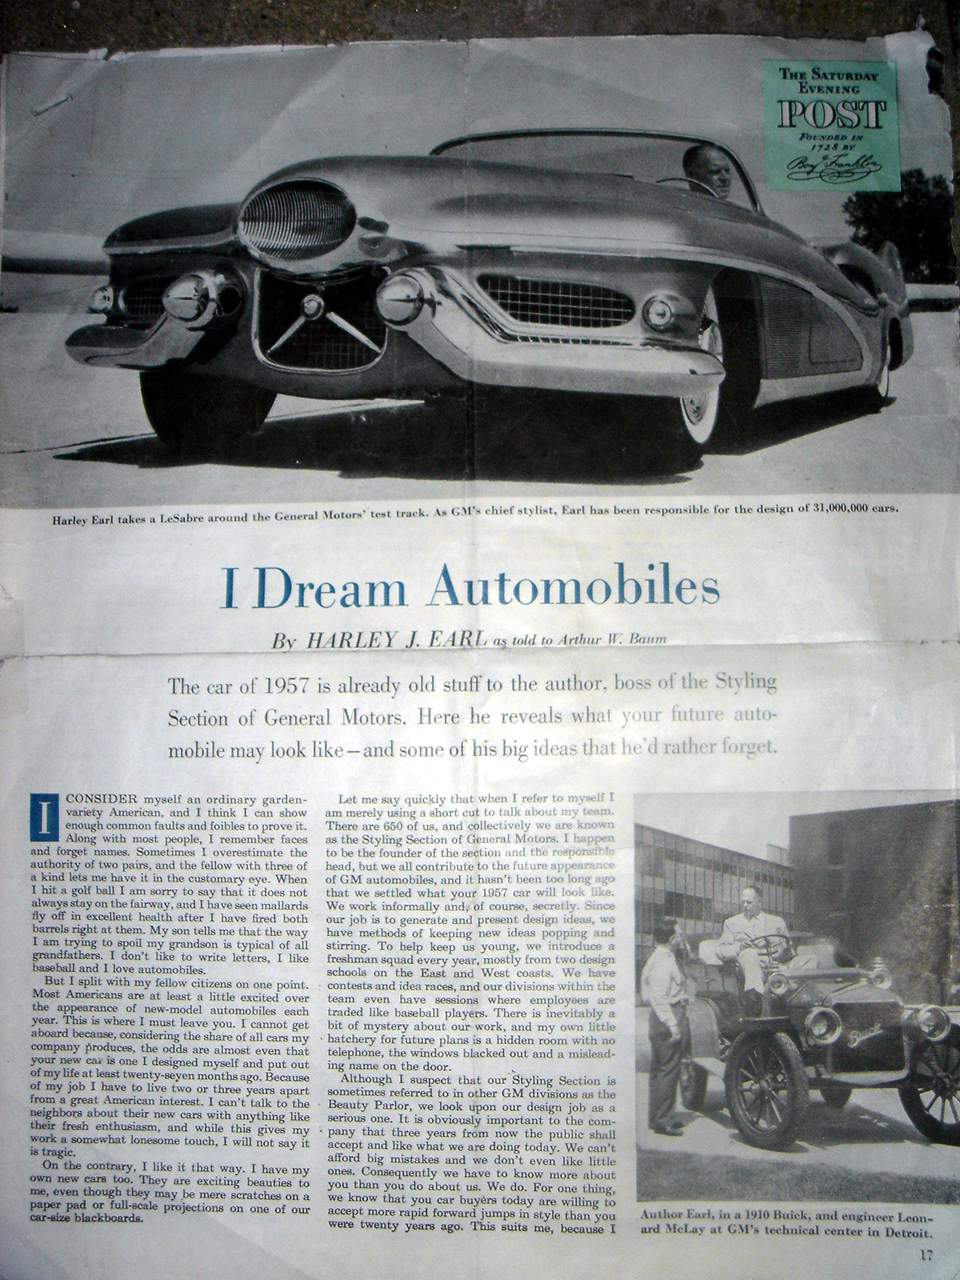 '54 I Dream Automobiles article written by HJE